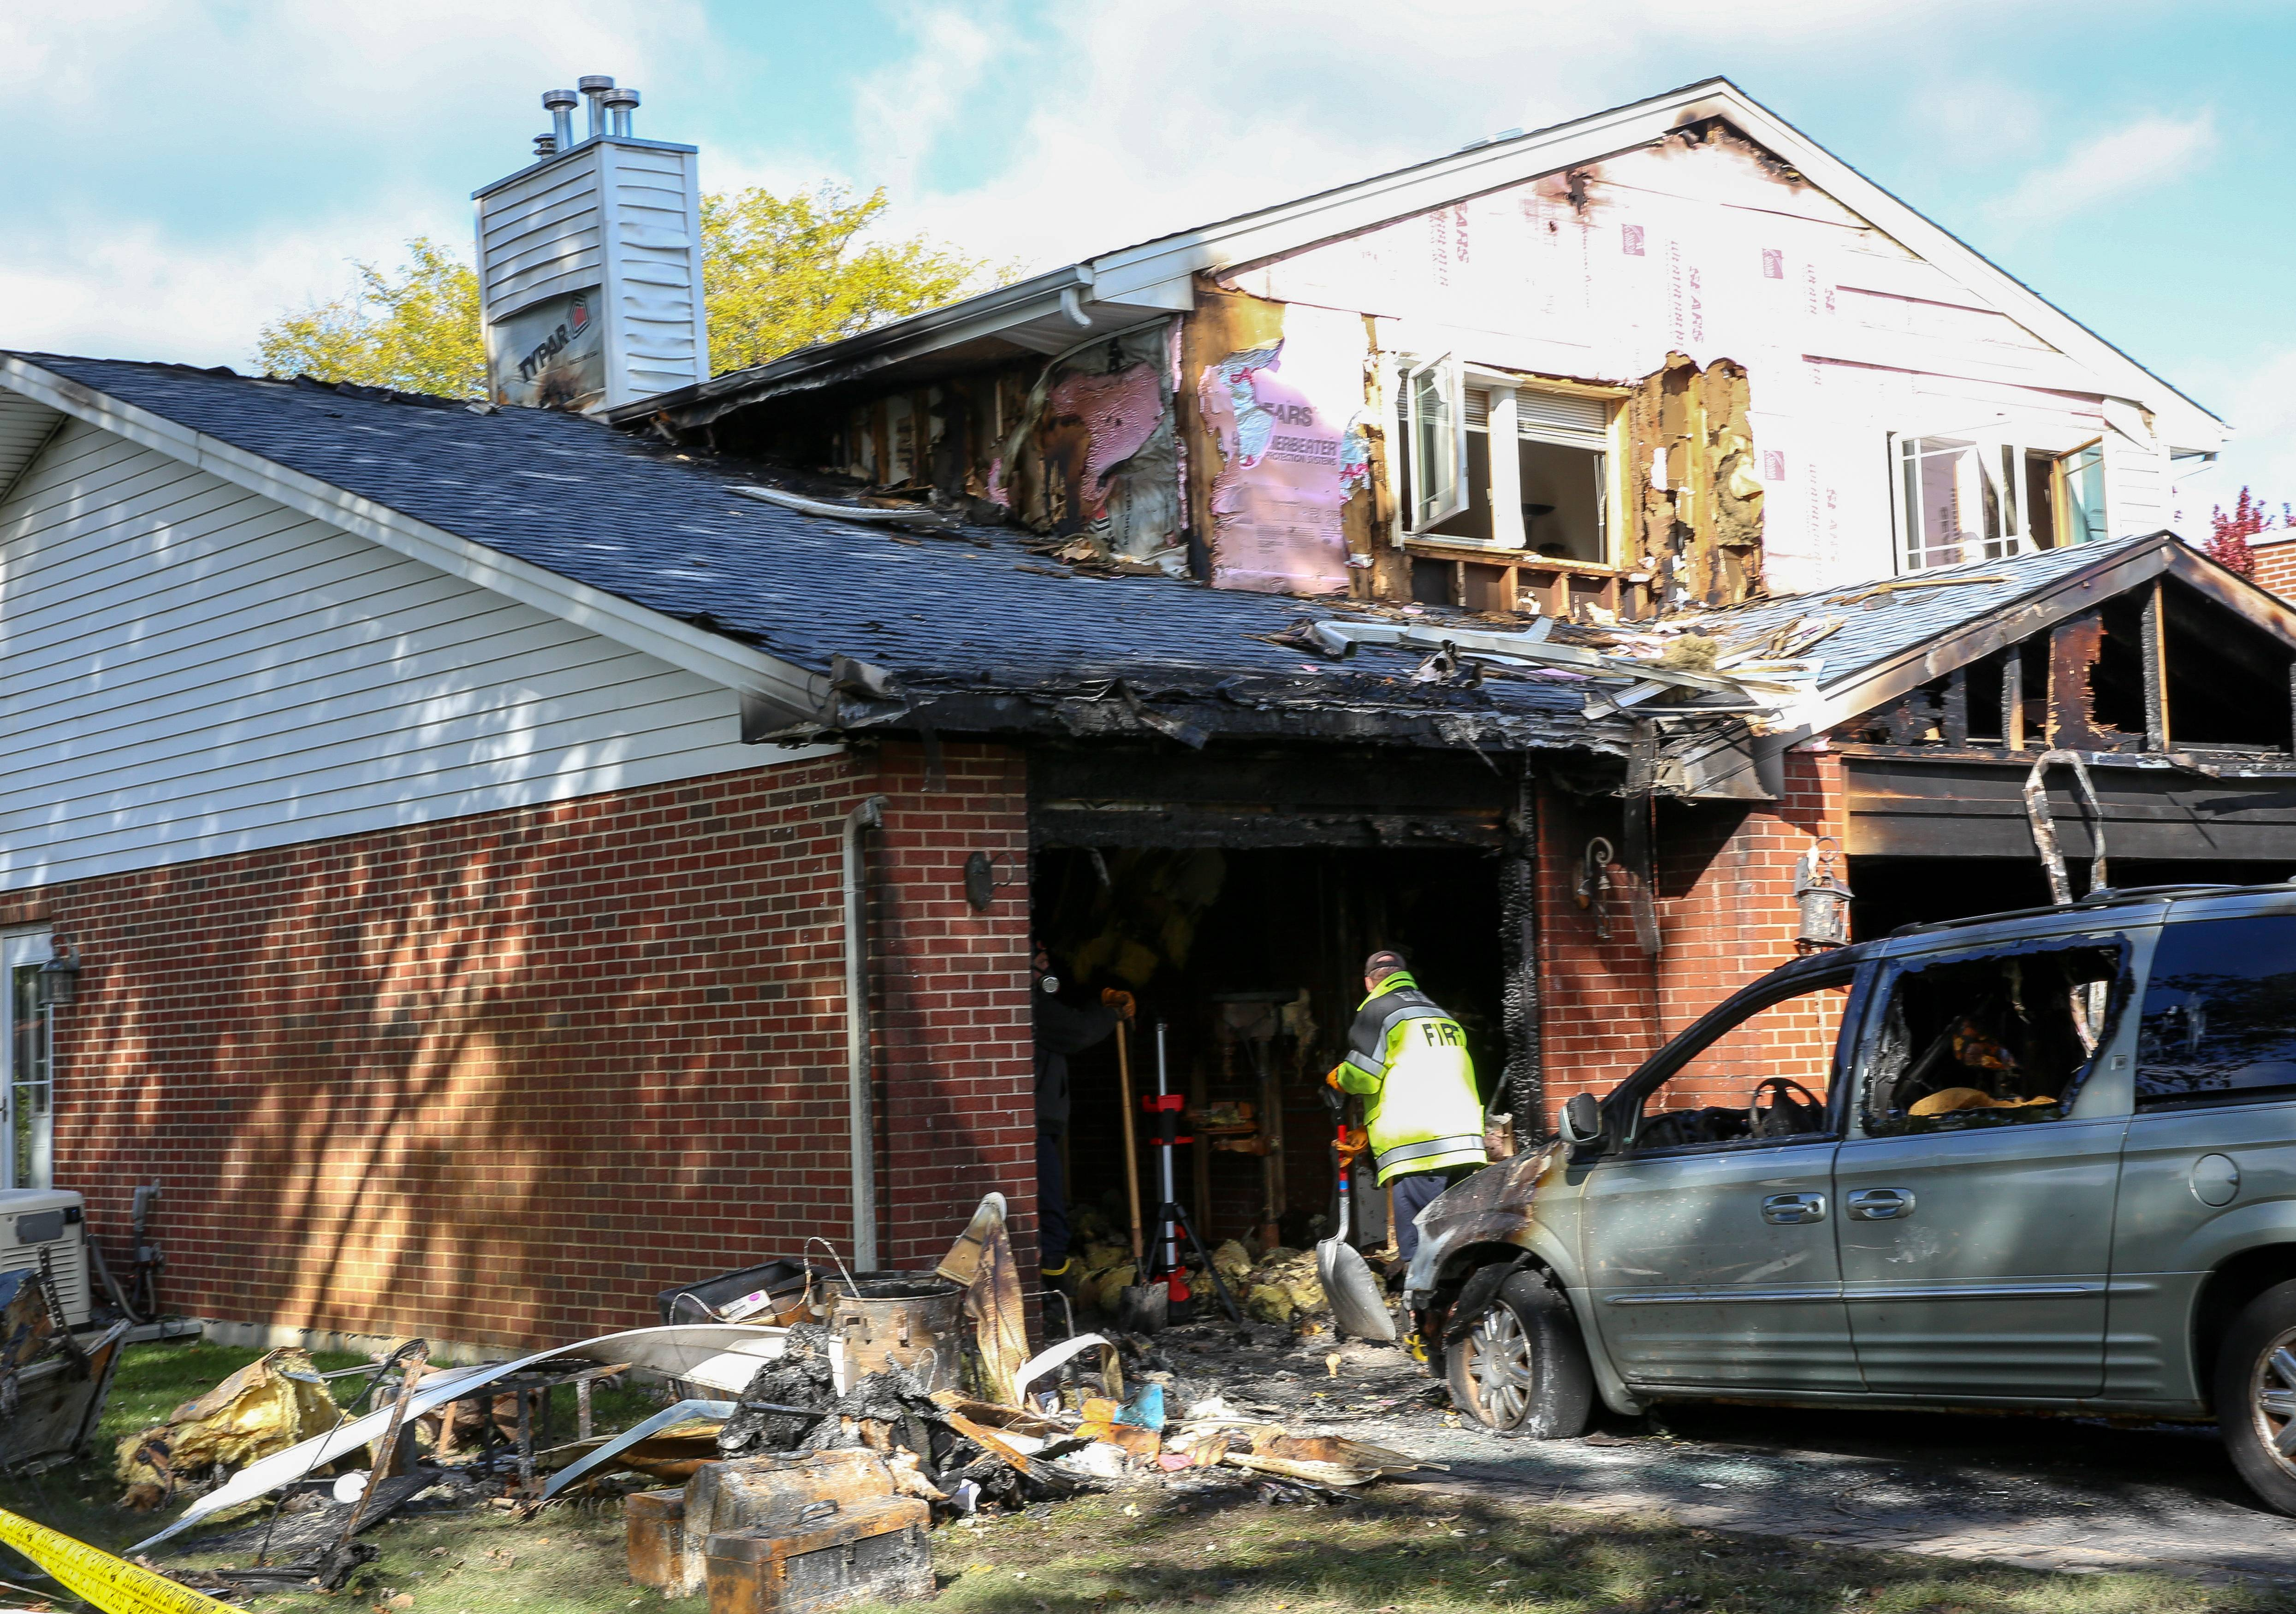 Firefighters searched Thursday through remains of a house fire in the 500 block of Crest Avenue in Elk Grove Village. The cause of the fire remained undetermined Thursday.